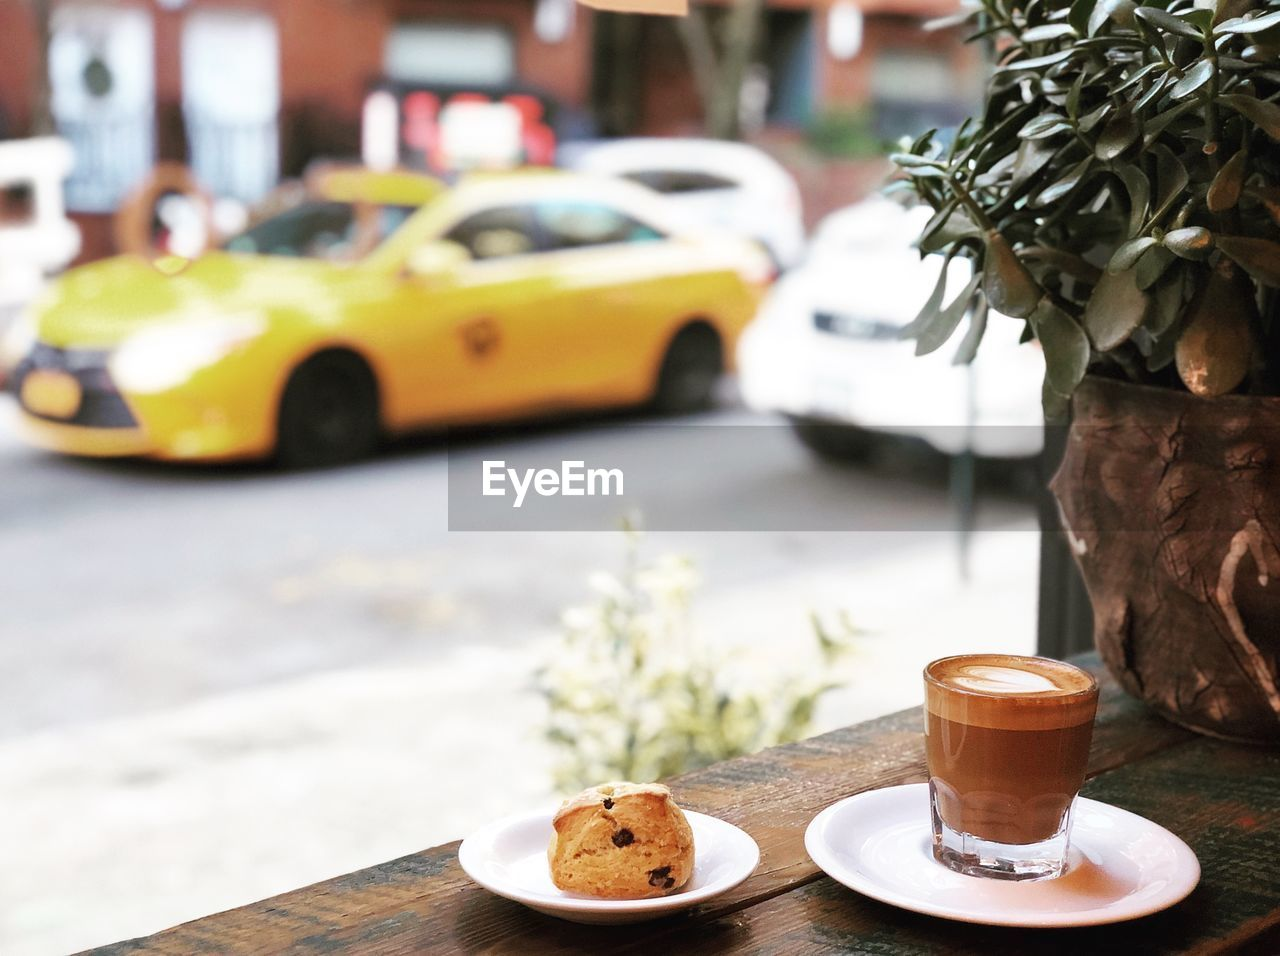 car, food and drink, motor vehicle, mode of transportation, coffee, table, drink, transportation, coffee - drink, coffee cup, cup, focus on foreground, food, freshness, land vehicle, mug, plate, architecture, refreshment, cafe, saucer, no people, crockery, latte